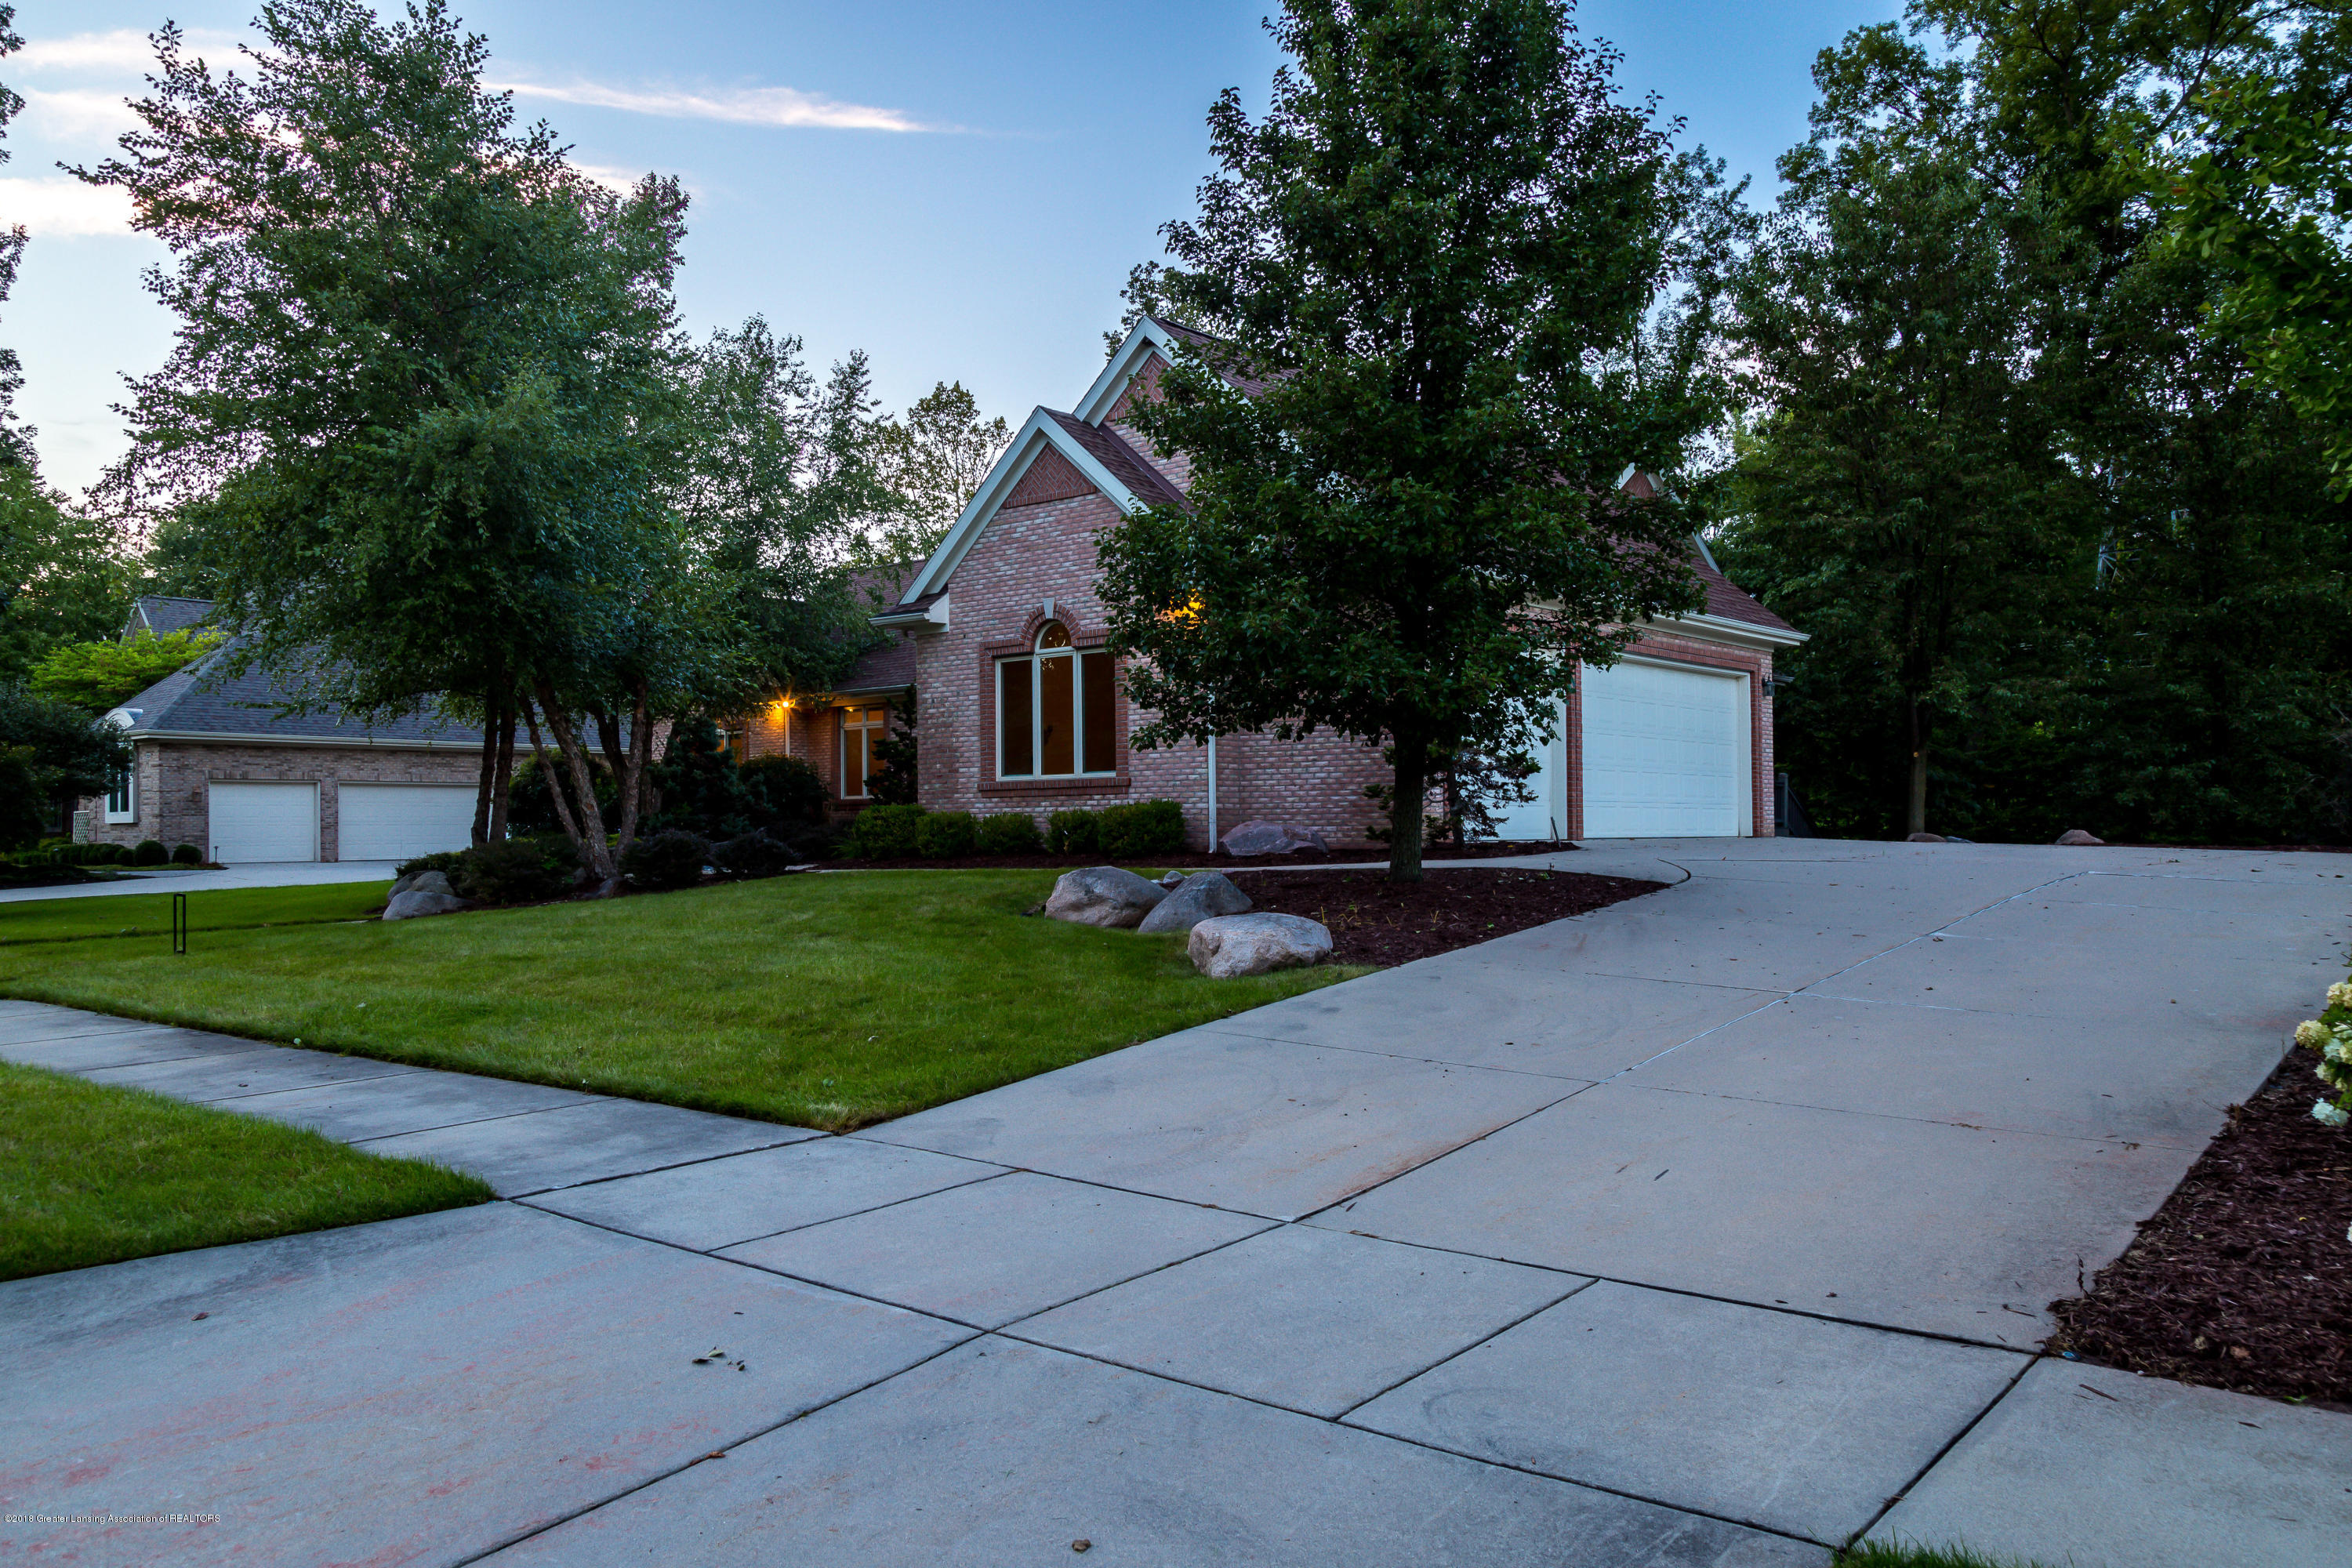 2016 Belwood Dr - 20180902-942A7905-HDR - 34